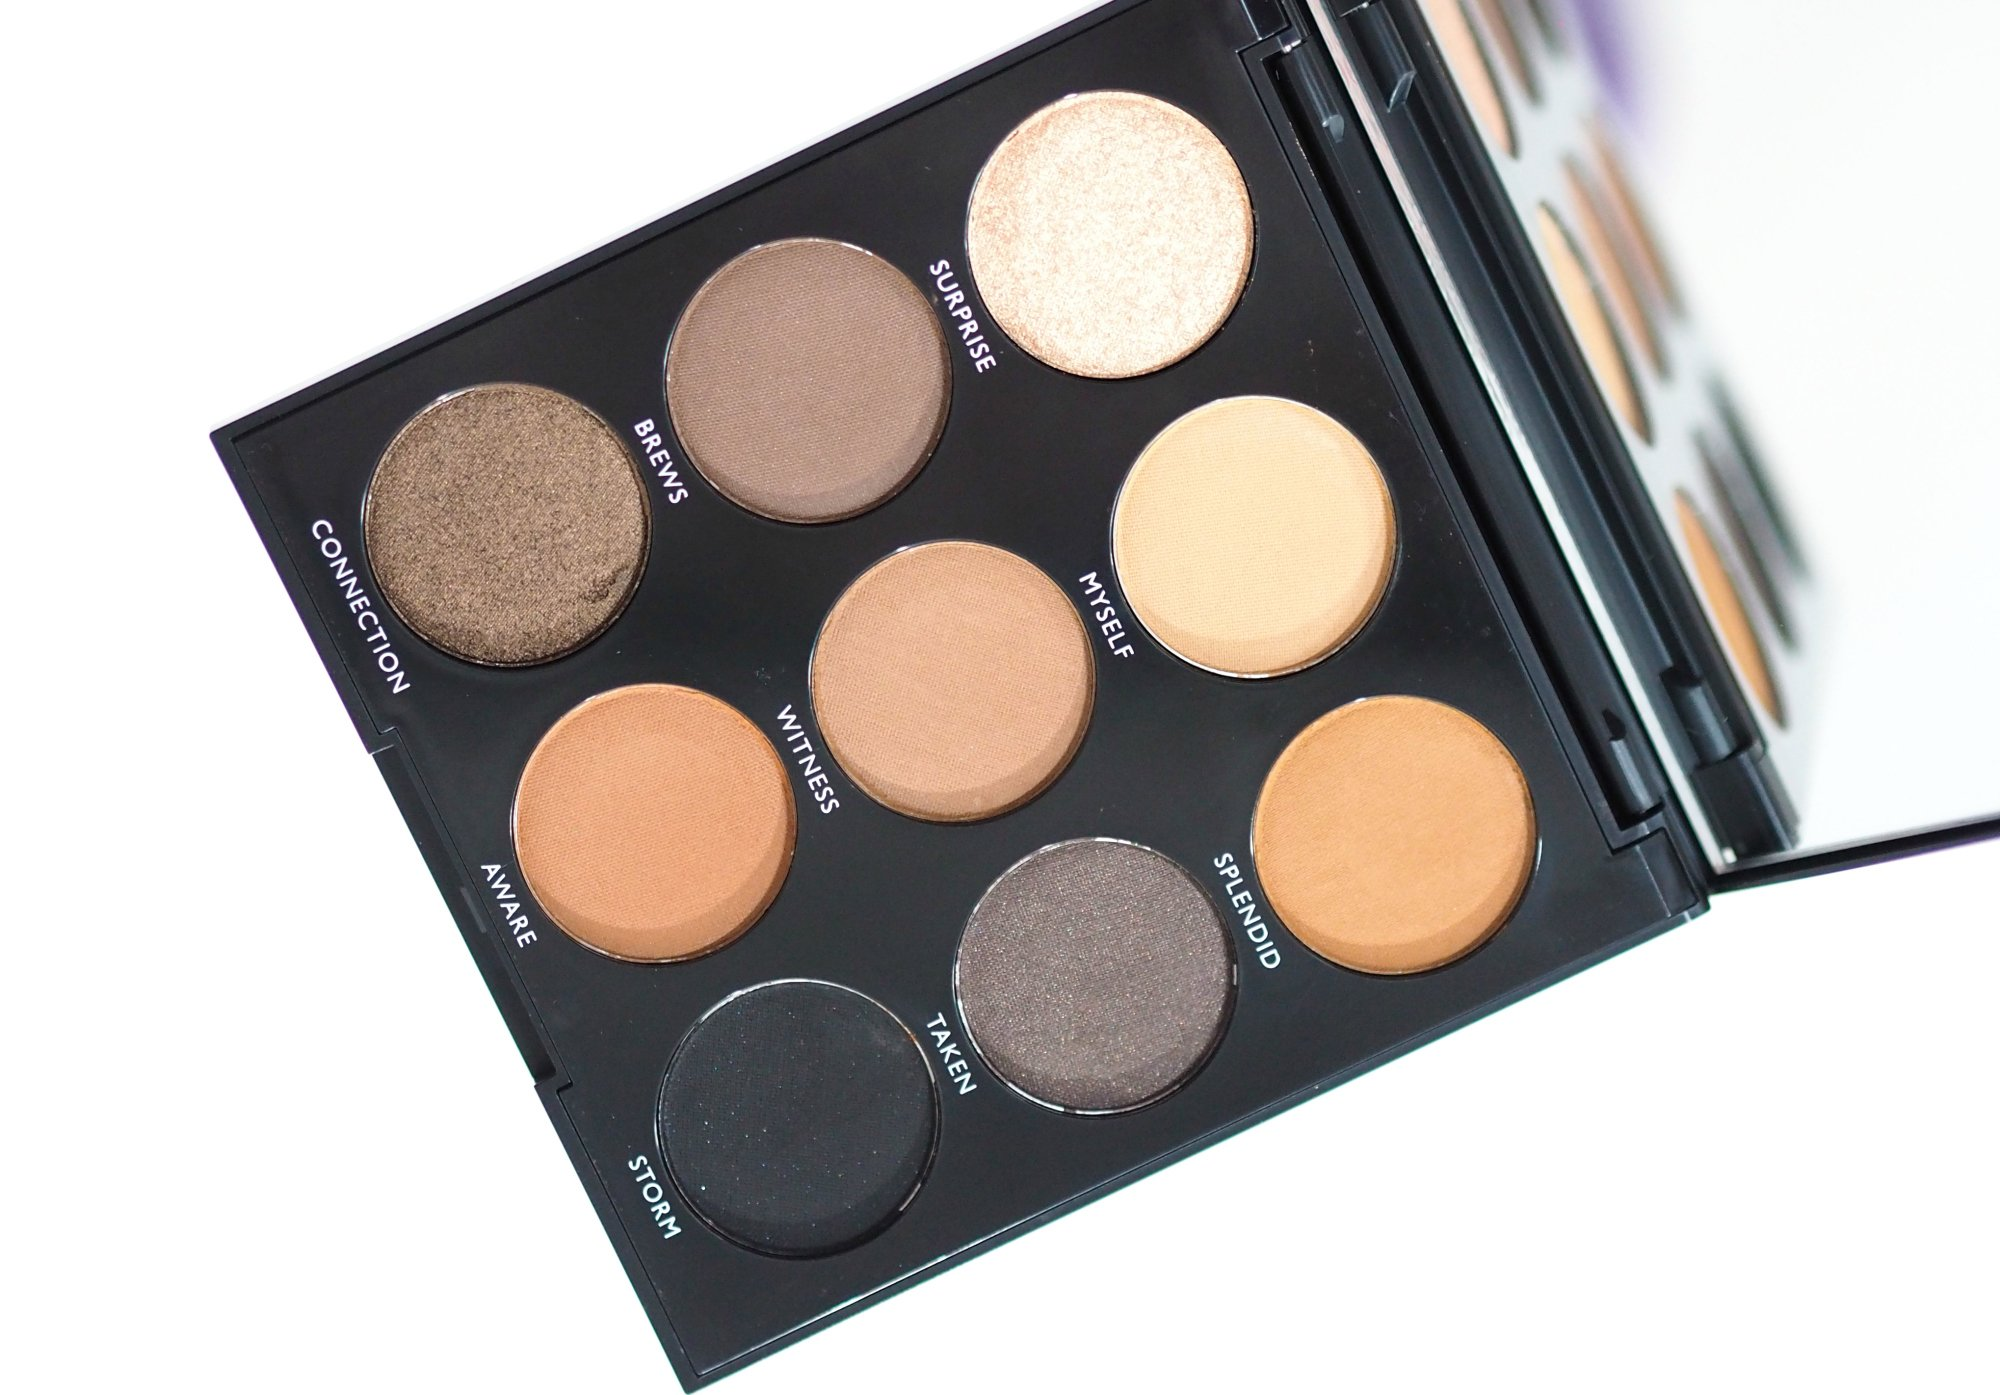 Morphe 9A Always Golden Eyeshadow Palette Review and Swatches